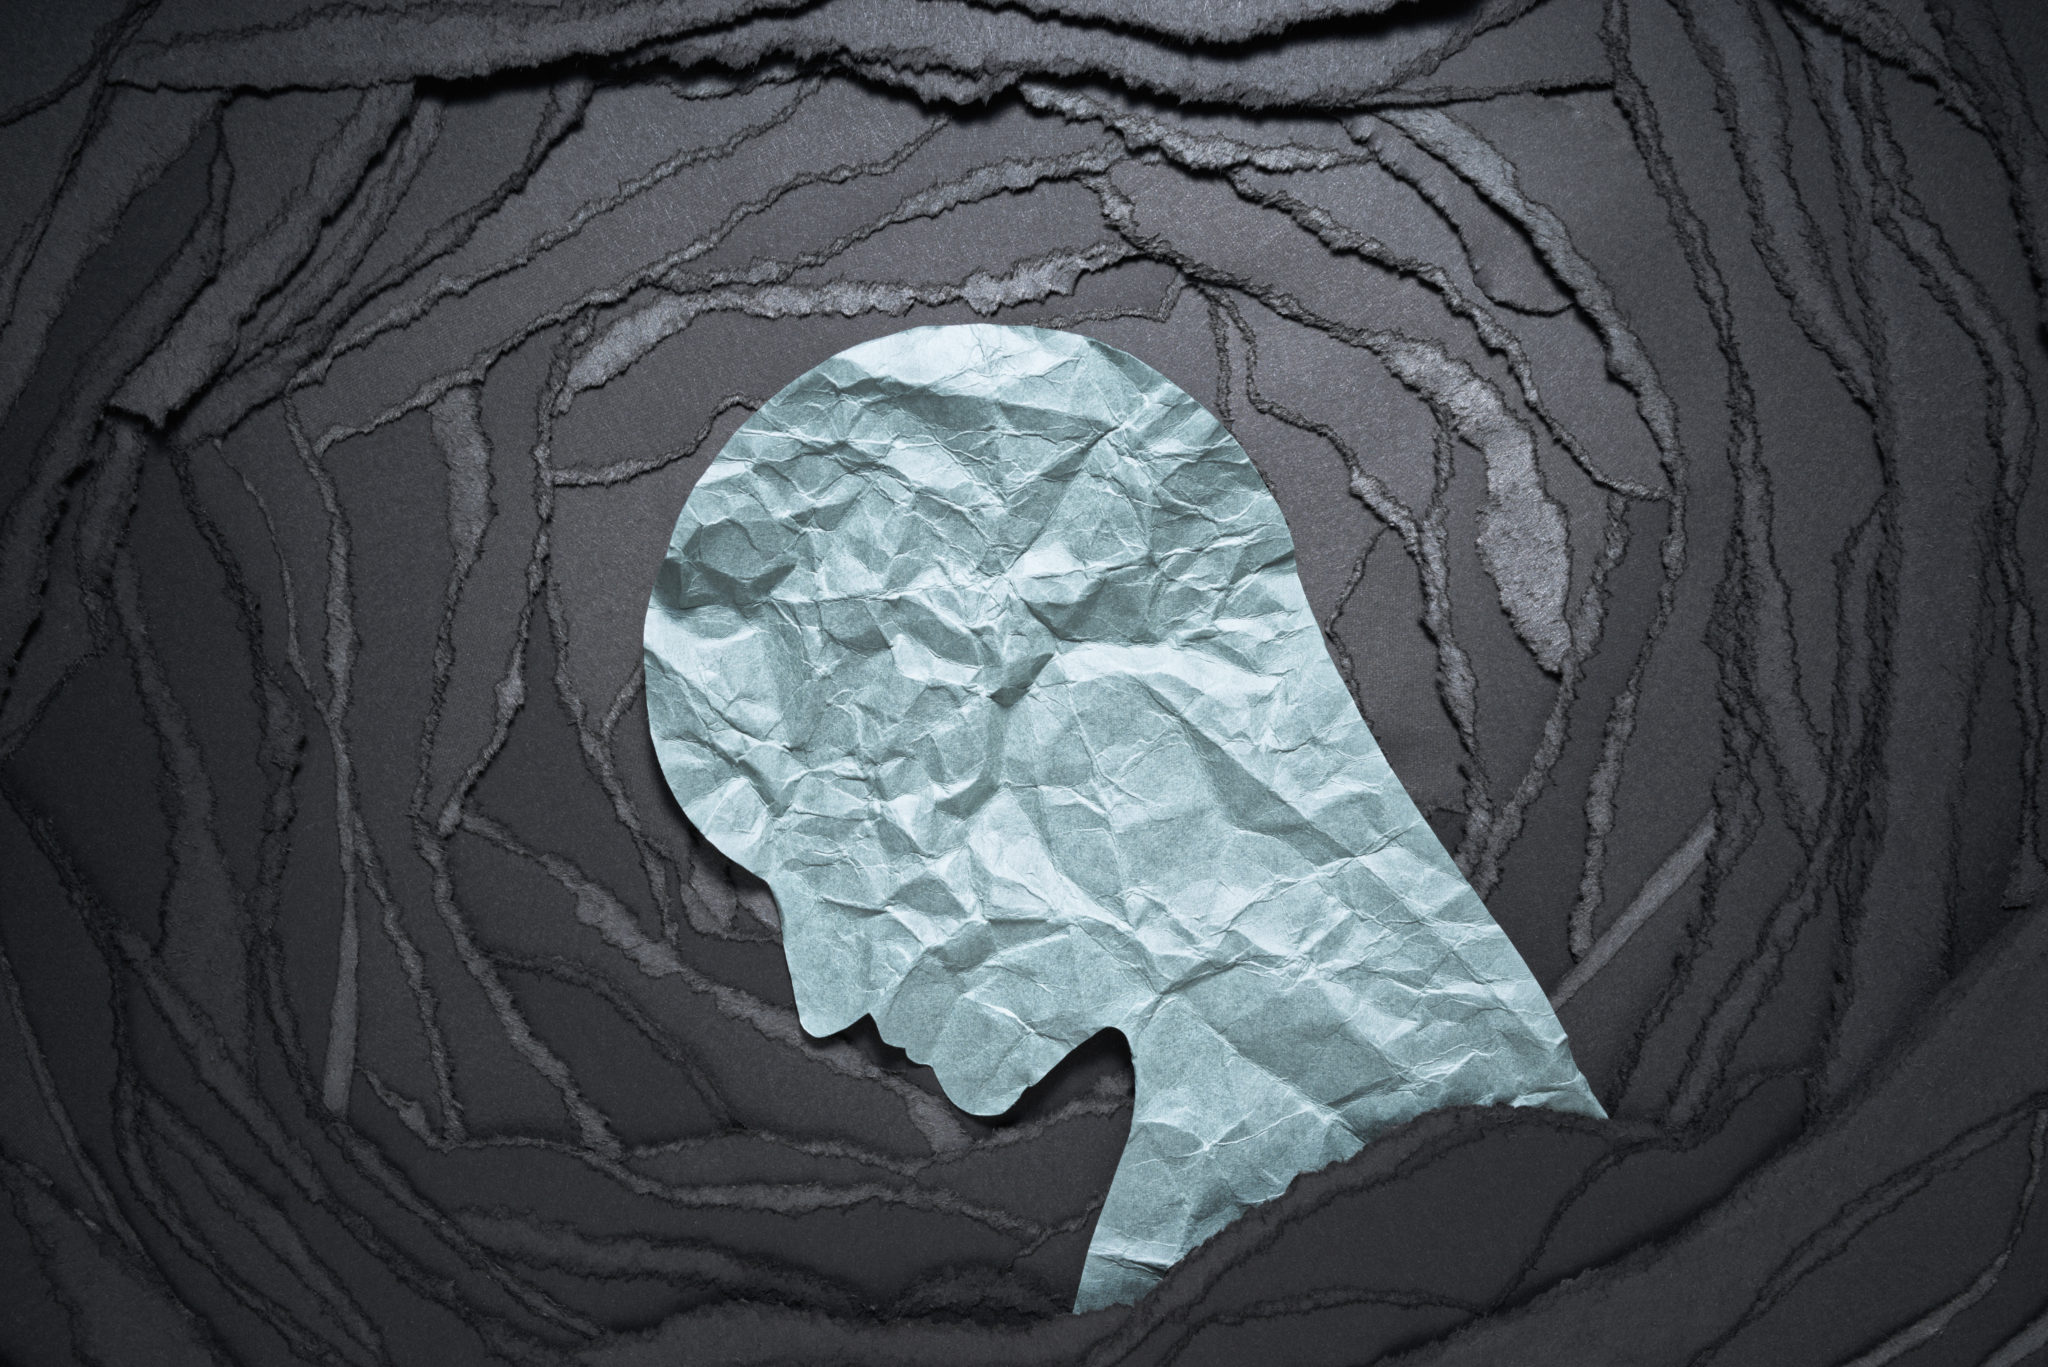 silhouette,of,depressed,and,anxiety,person,head.,negative,emotion,image.